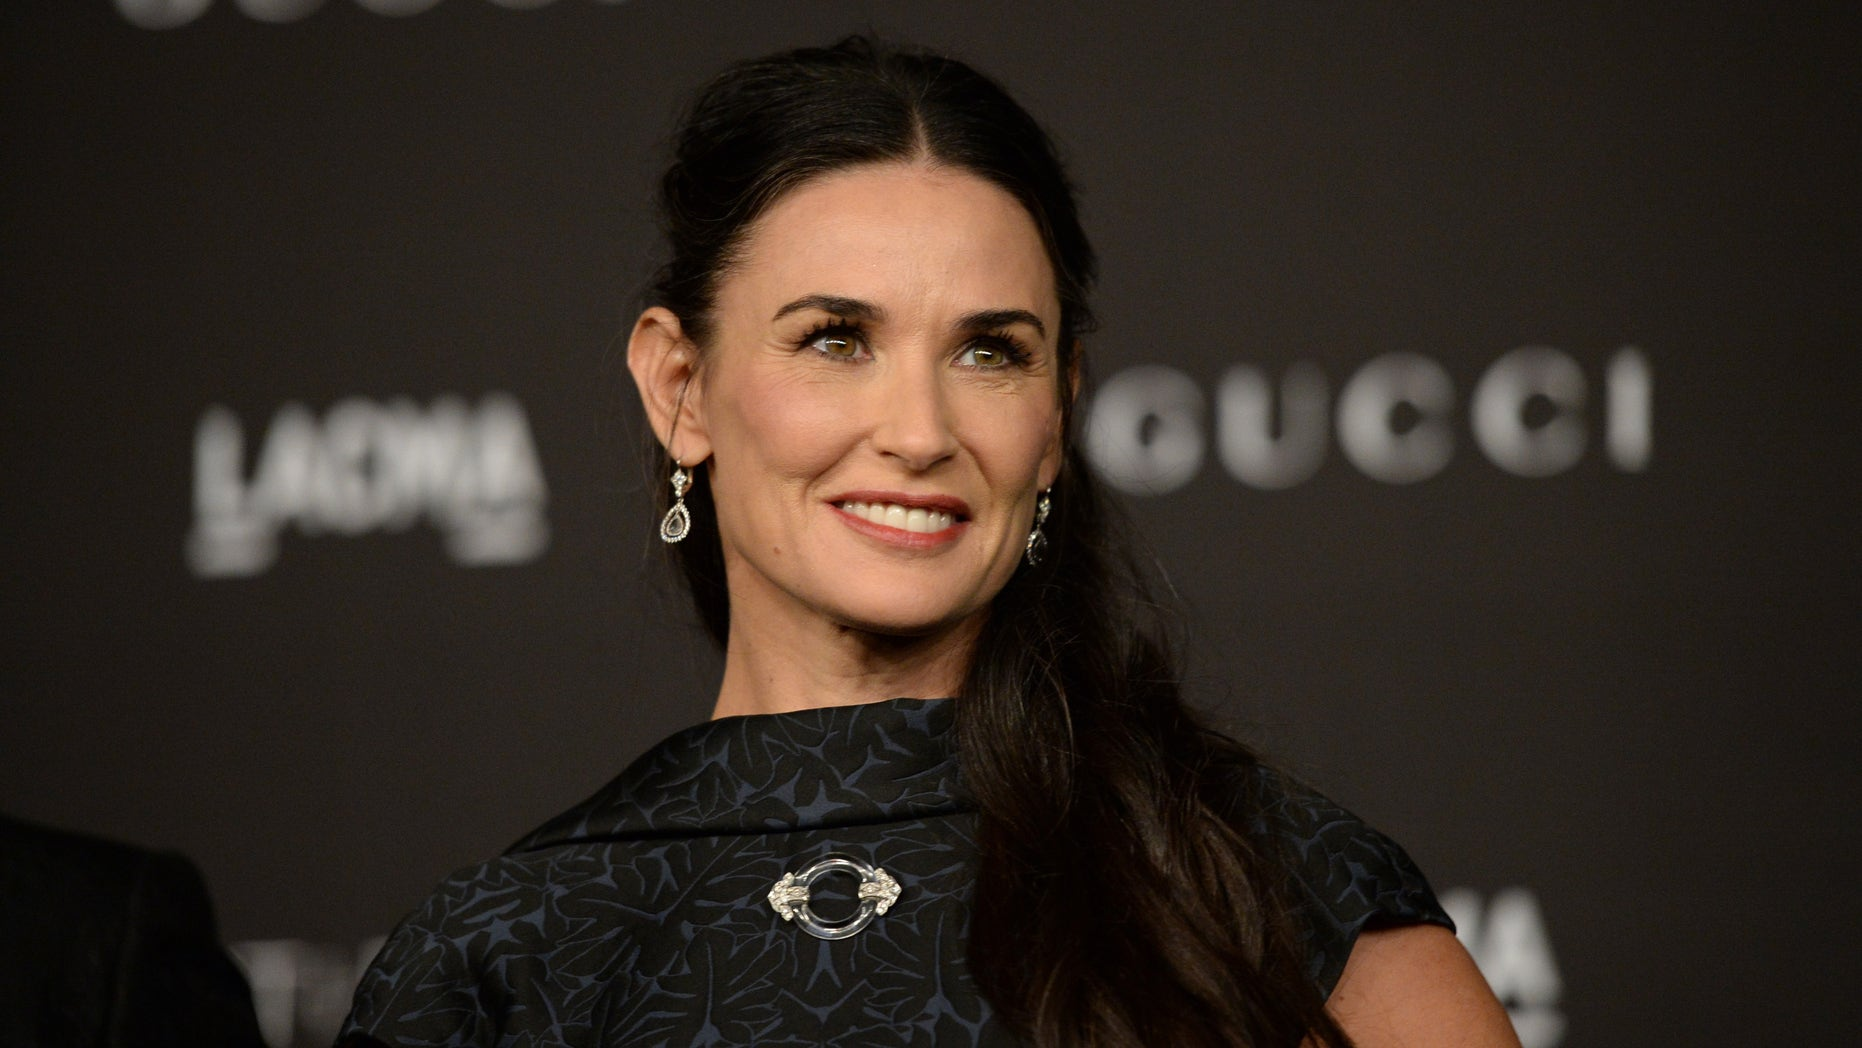 LOS ANGELES, CA - NOVEMBER 01:  Actress Demi Moore attends the 2014 LACMA Art + Film Gala honoring Barbara Kruger and Quentin Tarantino presented by Gucci at LACMA on November 1, 2014 in Los Angeles, California.  (Photo by Jason Merritt/Getty Images for LACMA)